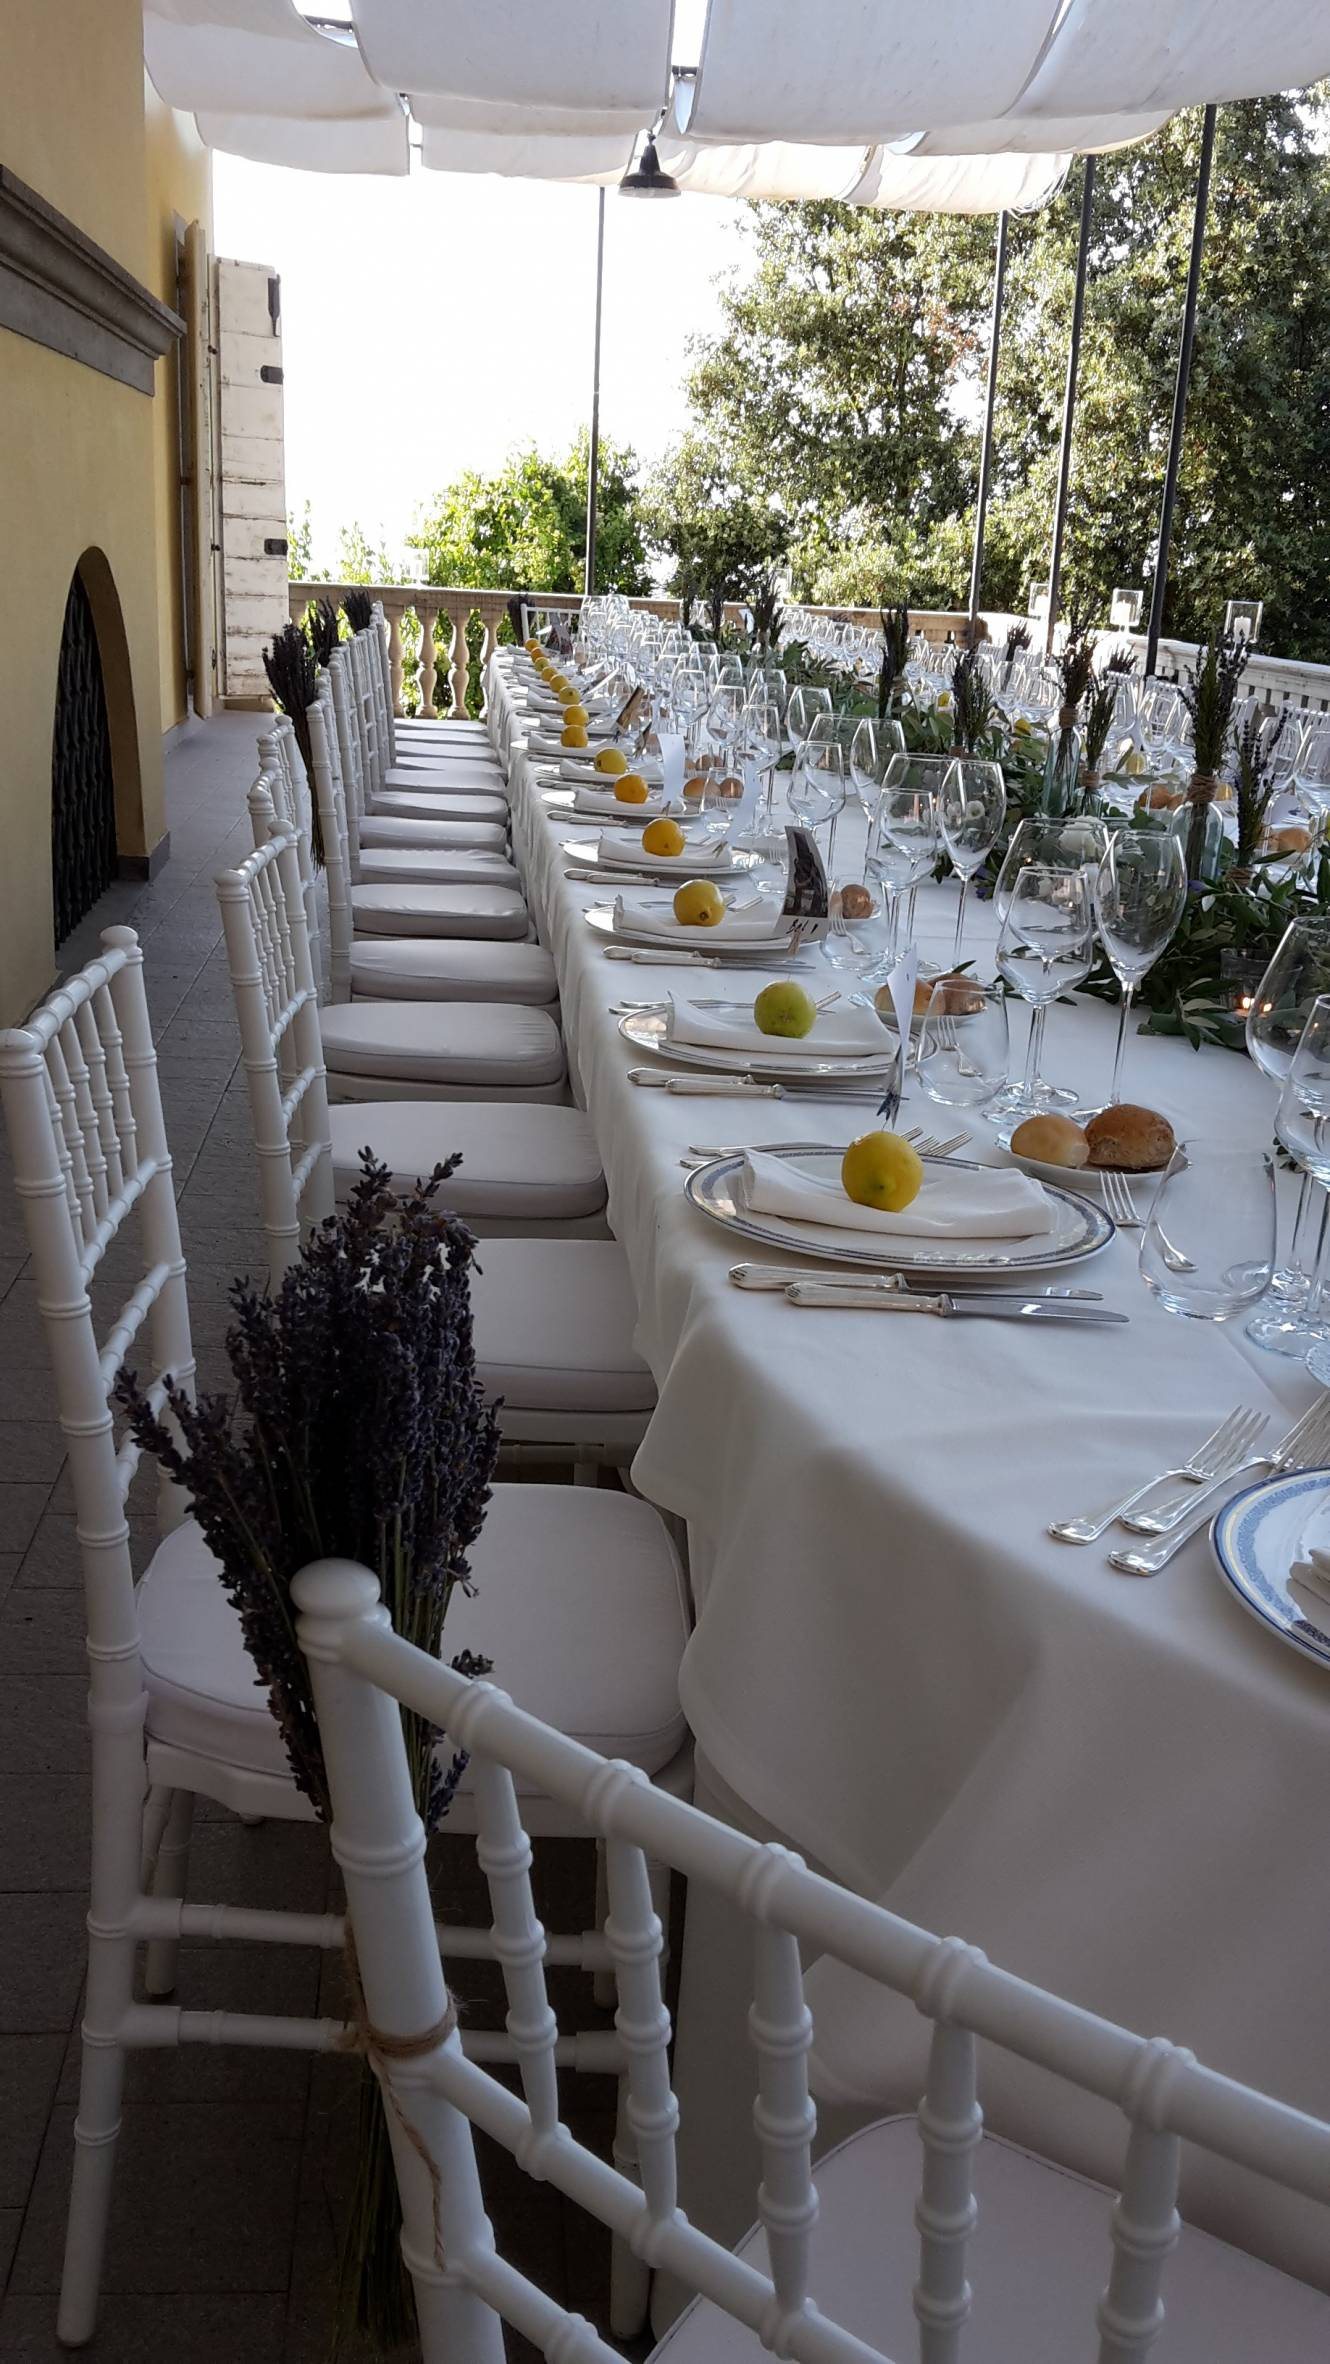 Location in Tuscany for events